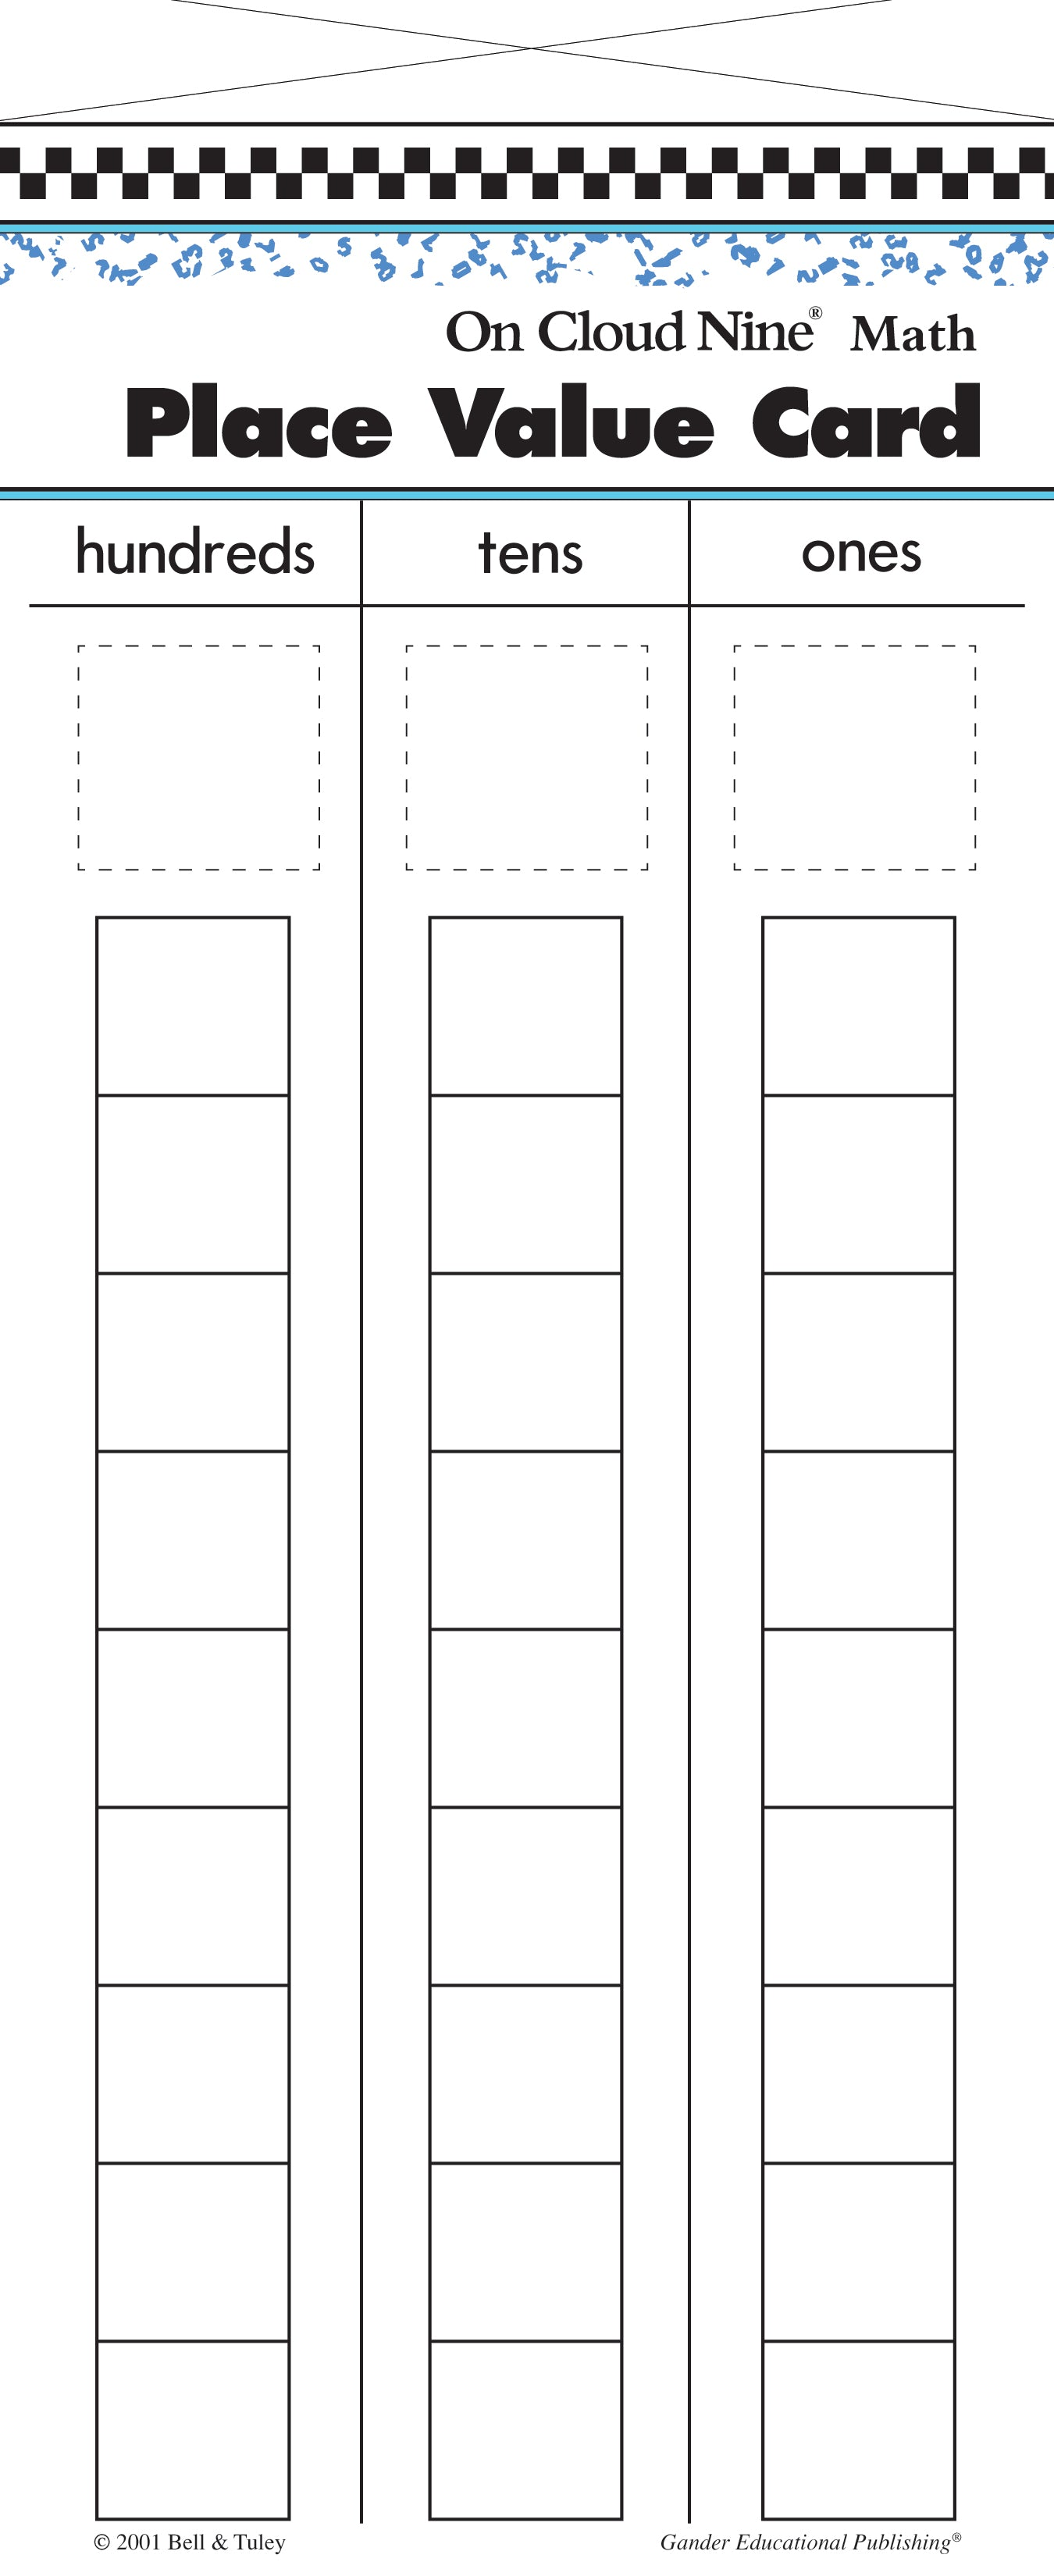 On Cloud Nine® Place Value Cards